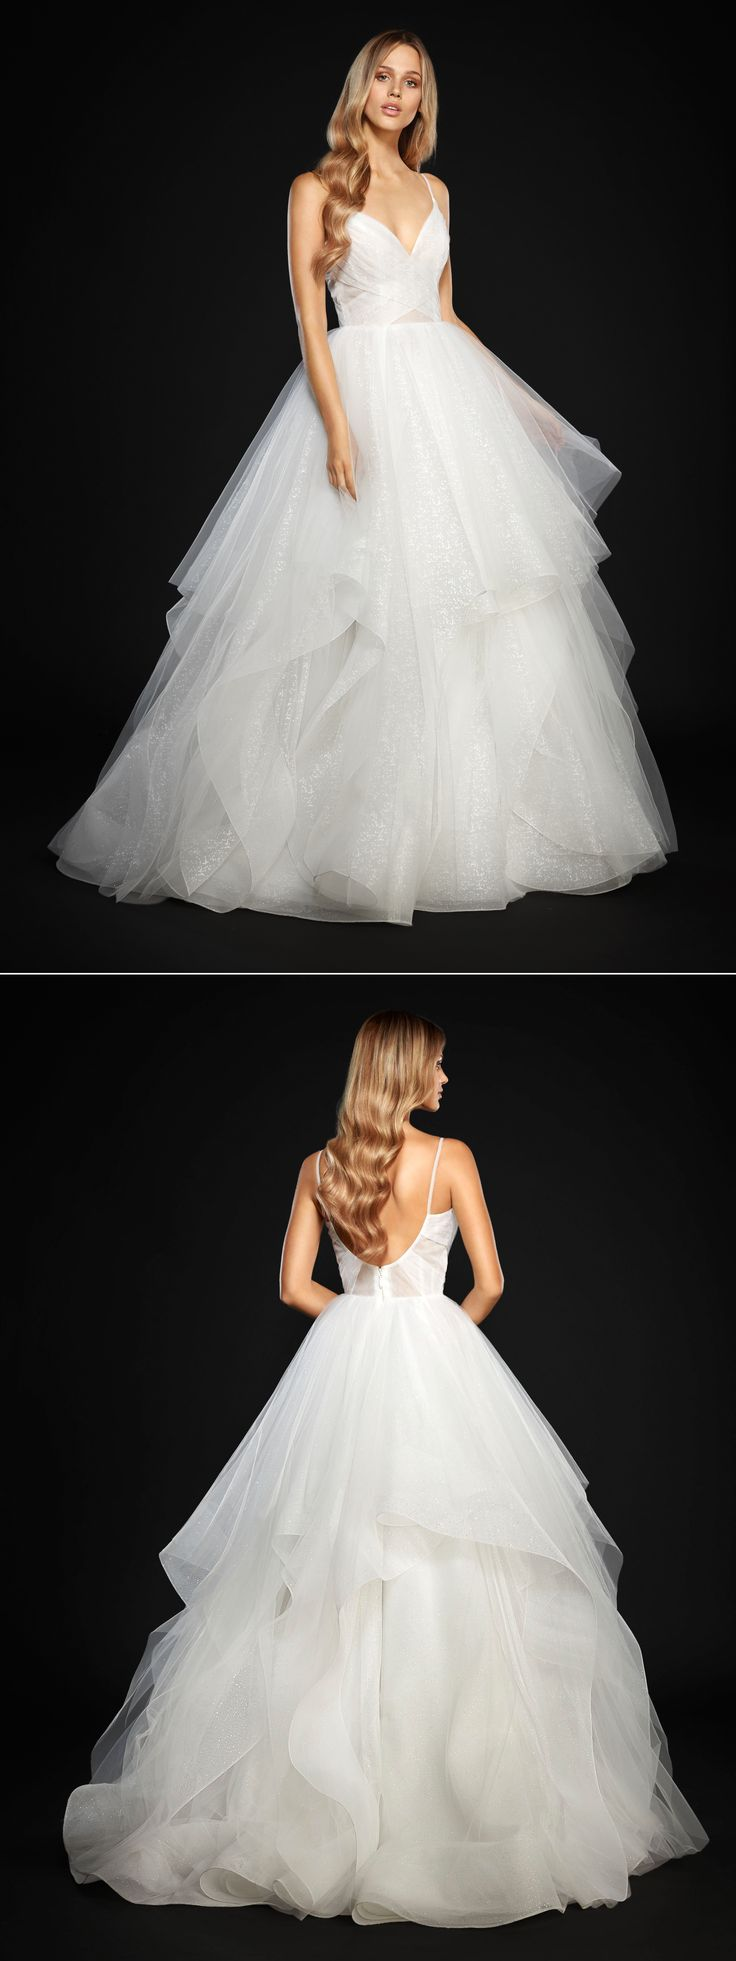 """Hayley Paige """"Chandon"""" ball gown in ivory / white // Wedding dress inspiration"""